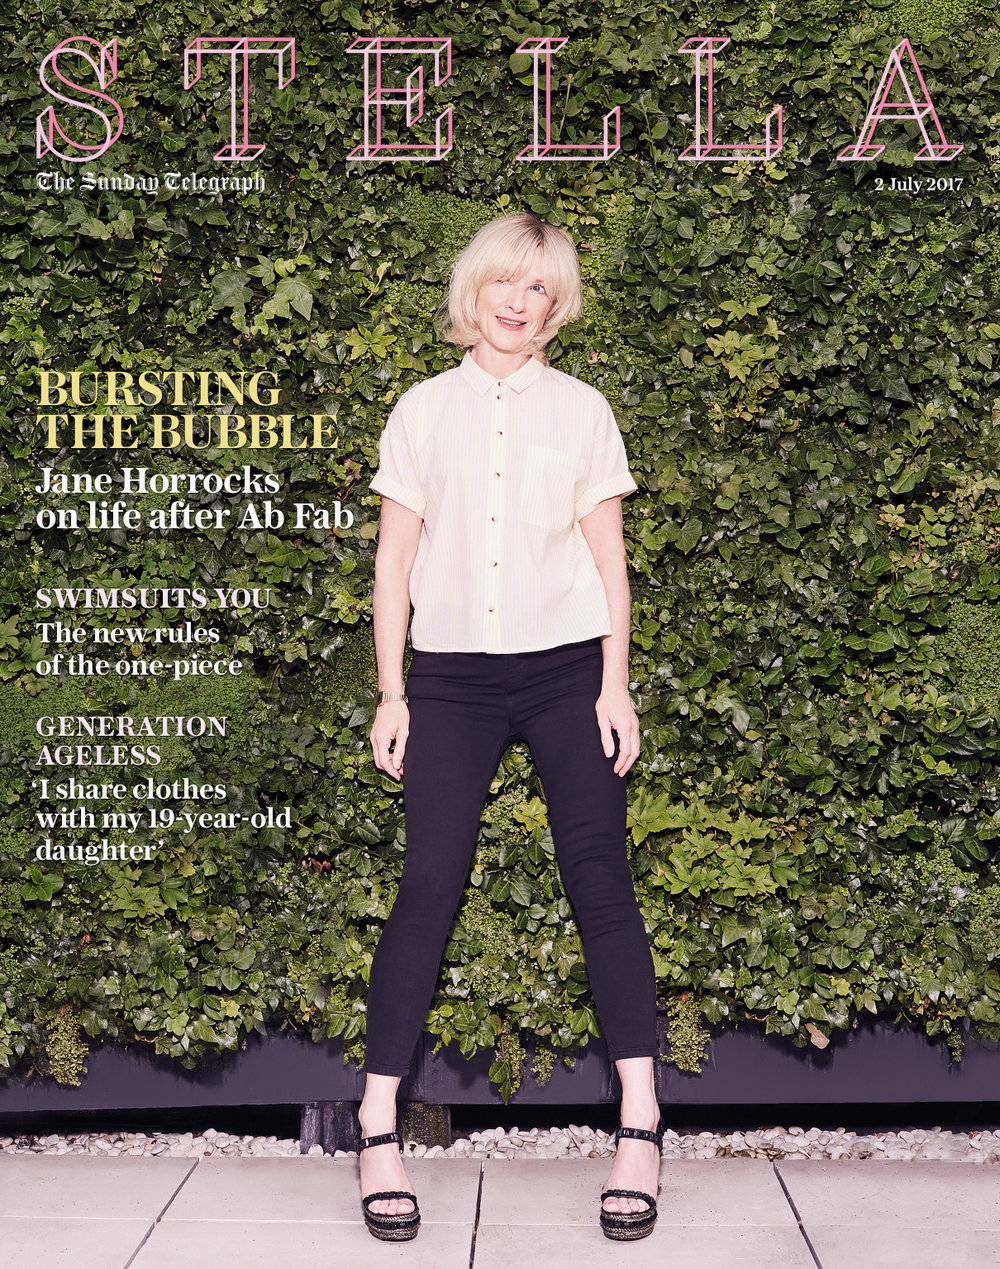 Sunday Telegraph Magazine_02-07-2017_Main_1st_p1.jpg